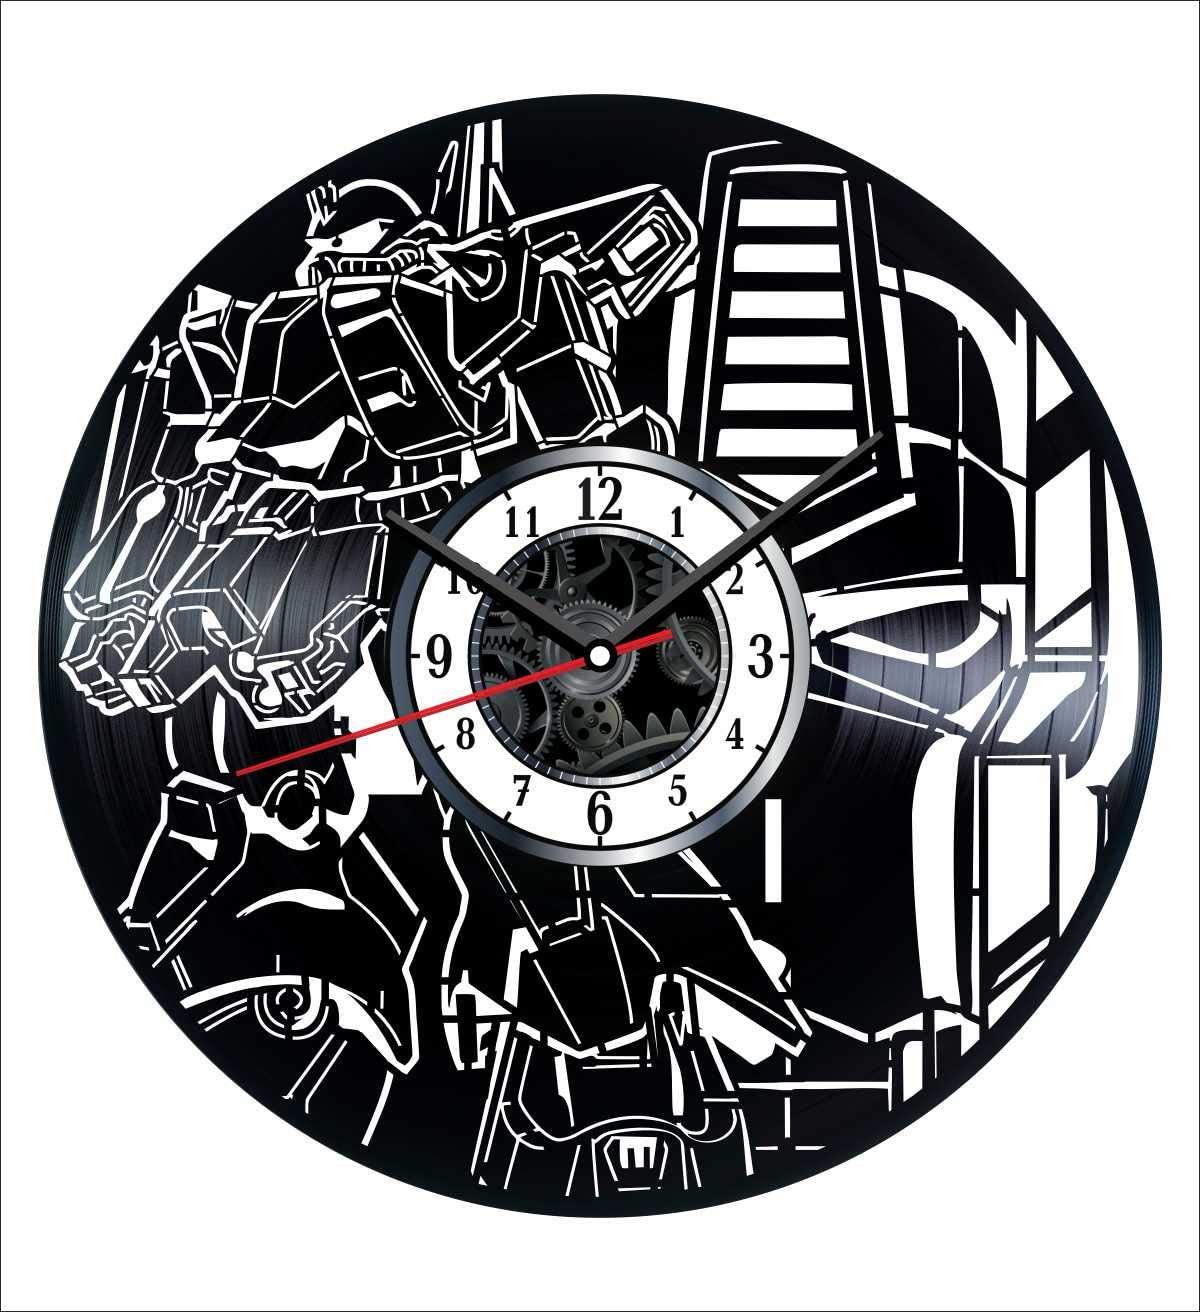 Transformers Vinyl Wall Clock Vintage Record - Get Unique Home and Office Decor Bedroom Kitchen Kids Living Room - Gifts for Men Women Kids Father Mother - Wall Art Design - Free Personalization